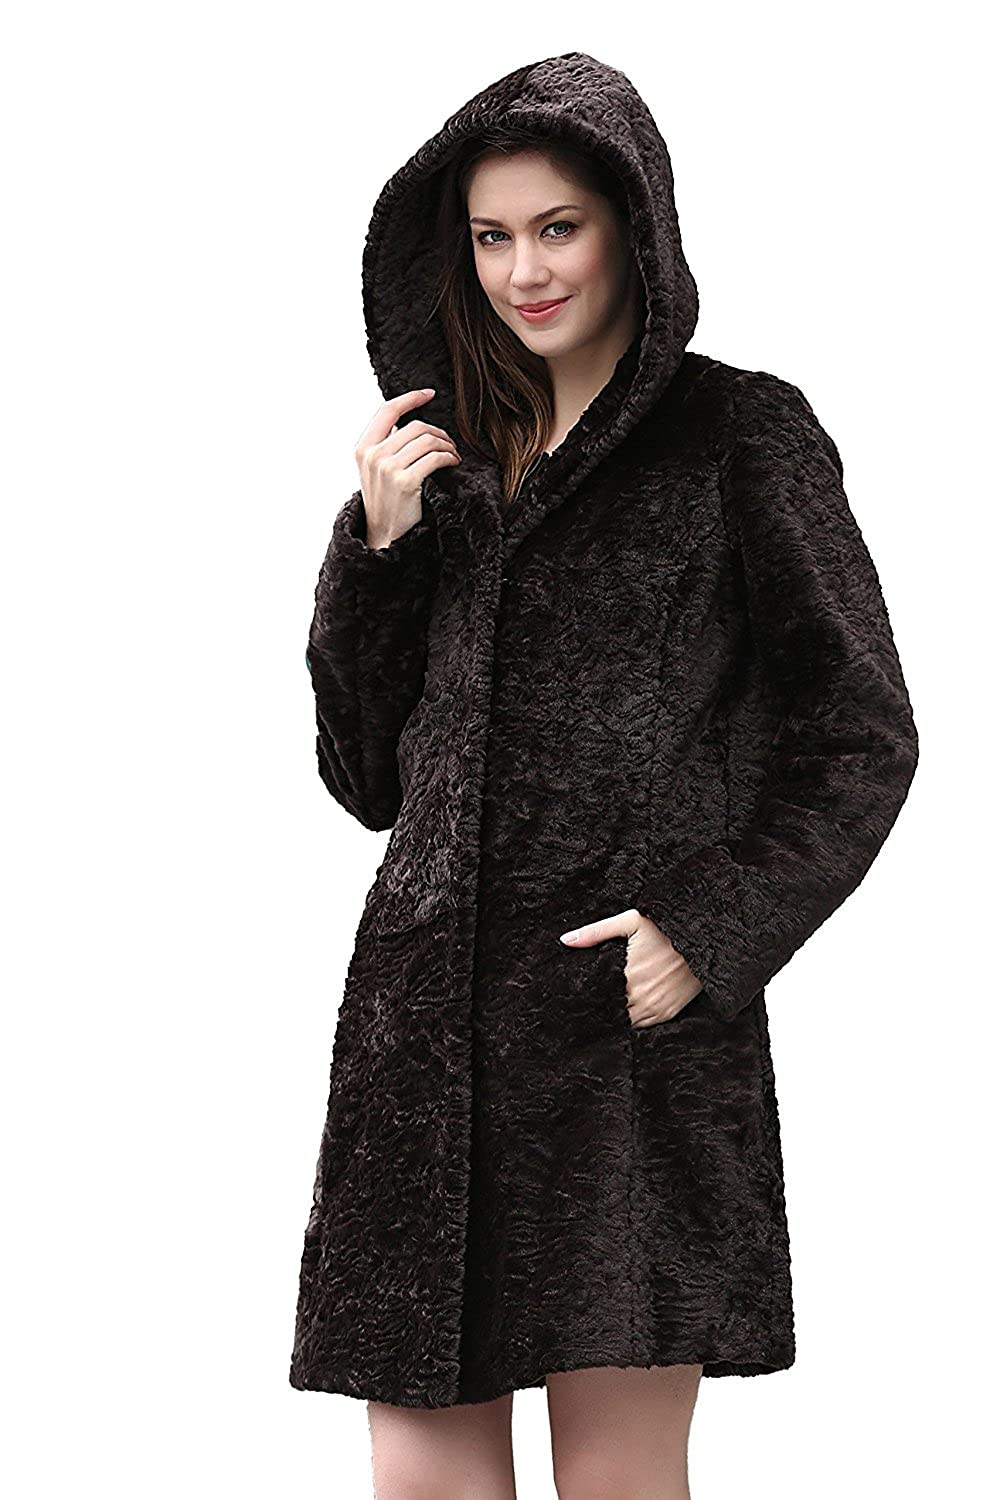 Adelaqueen Clearance Women's Lush Karakul Blending Faux Fur Coat With Hood